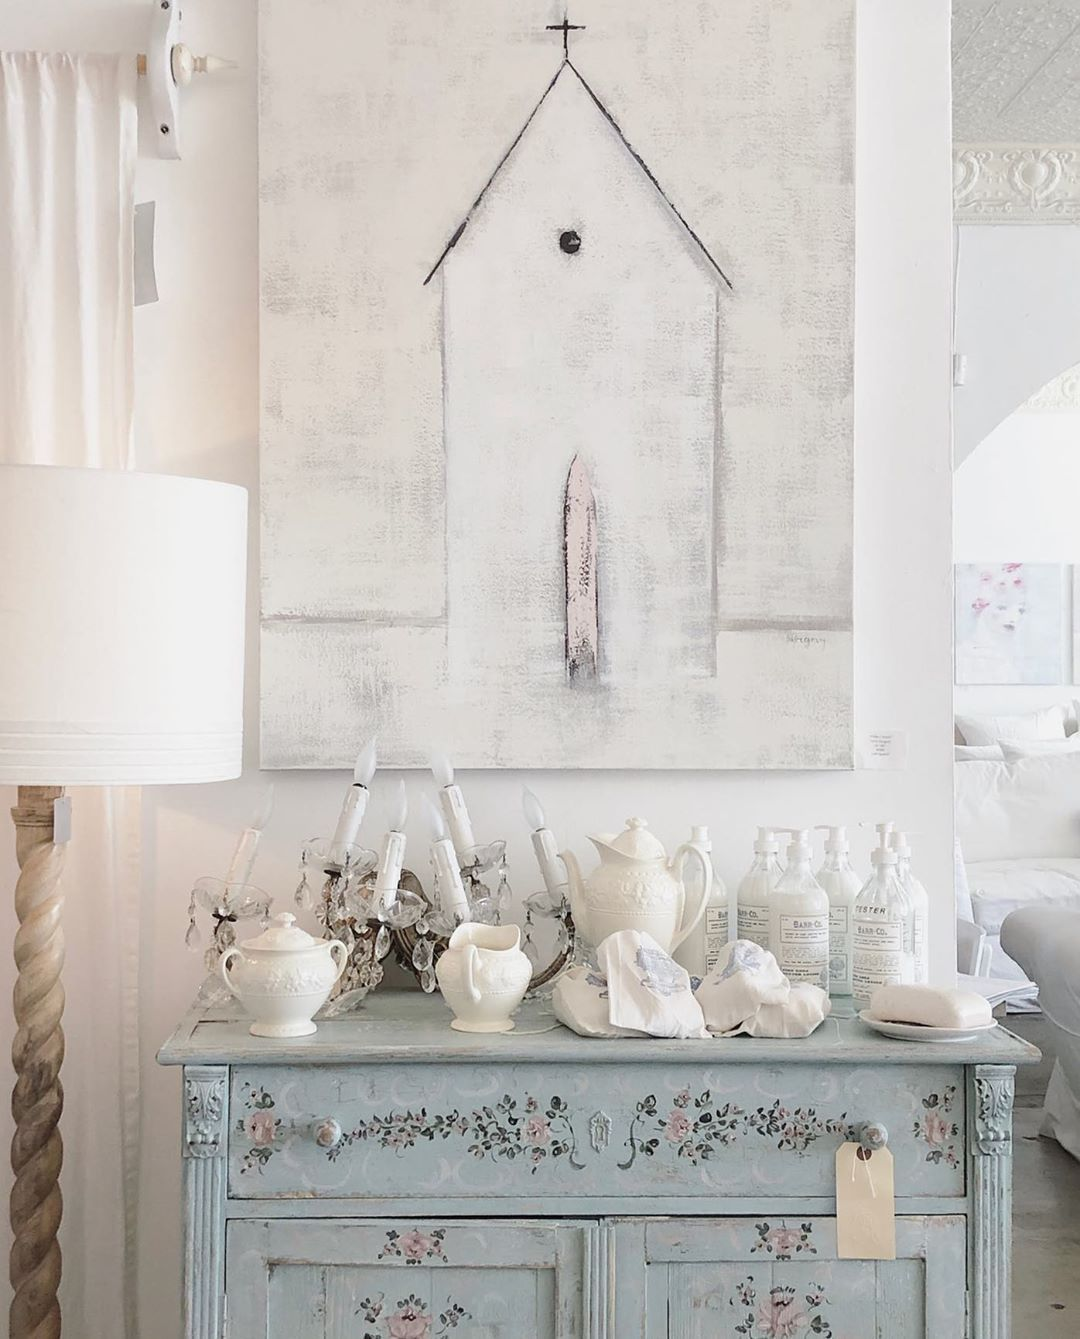 "Shabby Chic on Instagram: ""So much beauty.  Tap to shop. . . . . . #shabbychic #dream_interiors #designer #interiordesign #vintage #shabbychicstyle #shabbychichome…"" -  Shabby Chic on Instagram: ""So much beauty.  Tap to shop. . . . . . #shabbychic #dream_interiors # - #Beauty #Chic #Designer #dreaminteriors #frenchshabbychicbedrooms #Instagram #interiordesign #Shabby #shabbychicbedroomsdiy #shabbychicbedroomsmaster #shabbychicbedroomsvintage #shabbychic #shabbychichome #shabbychicstyle #shop #T"